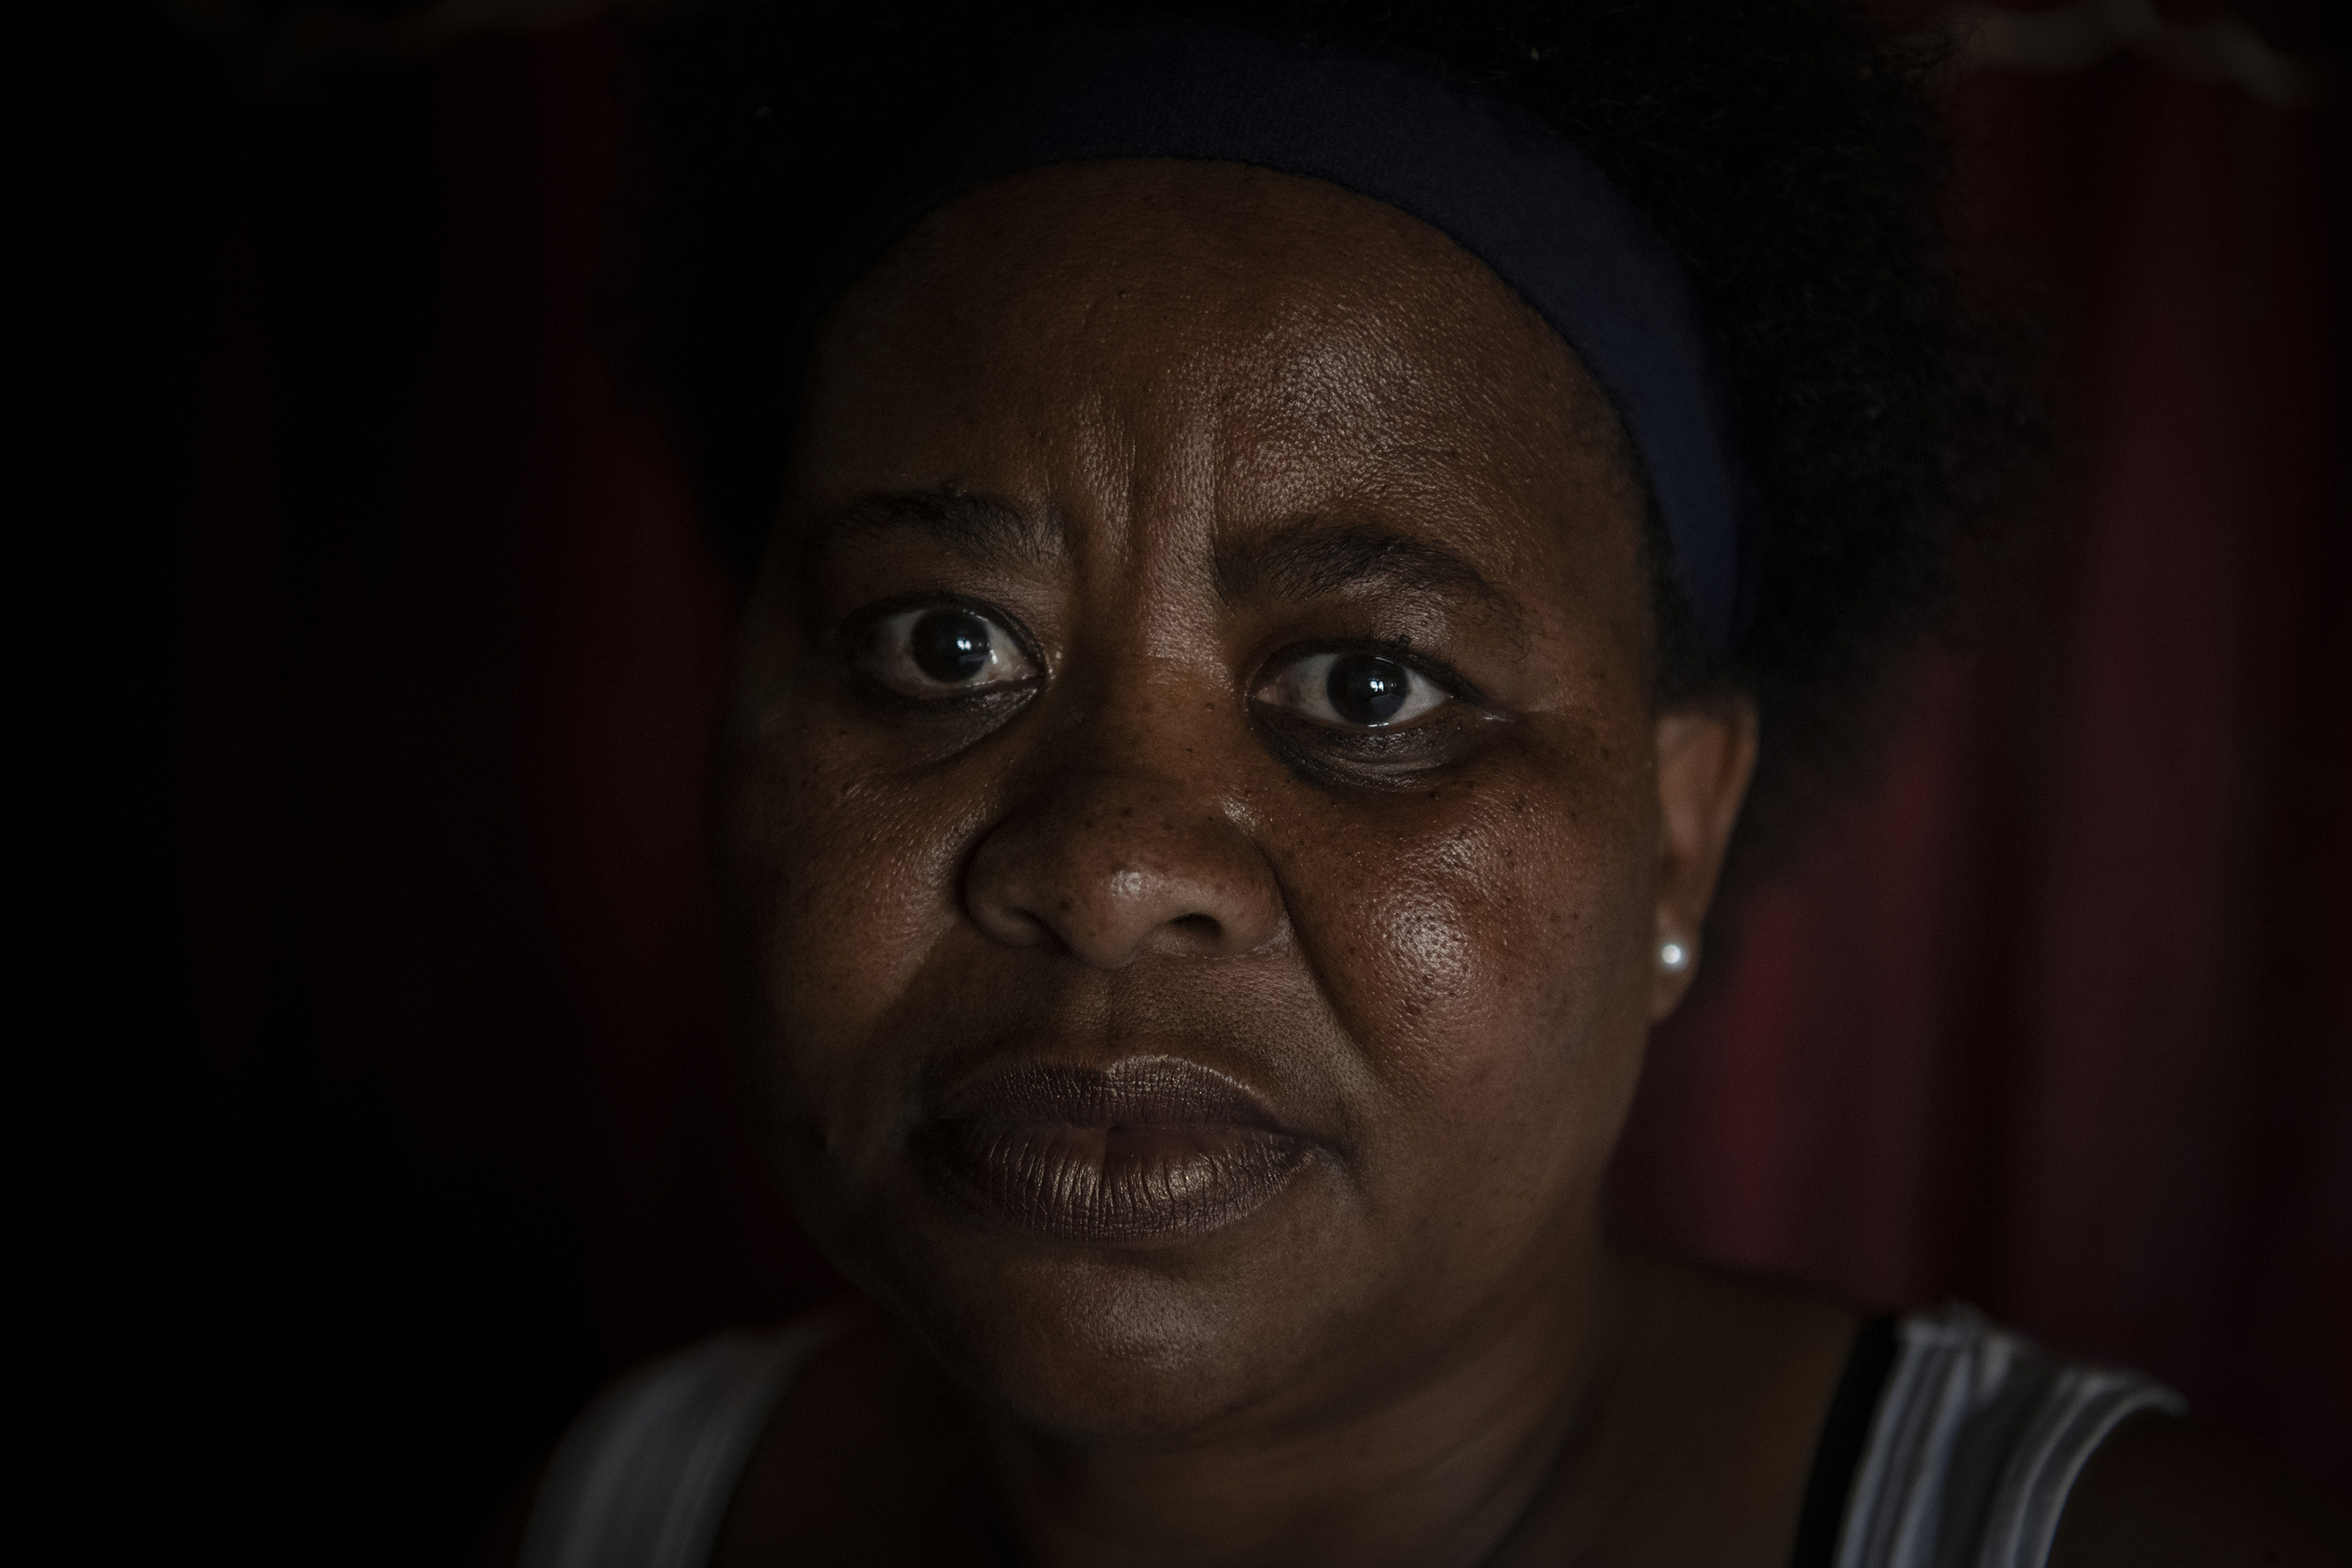 23 September 2019: 'My mother believed that a woman's grave is at the residence of her in-laws,' says Poppy Makgobatlou, who was abused by her husband.